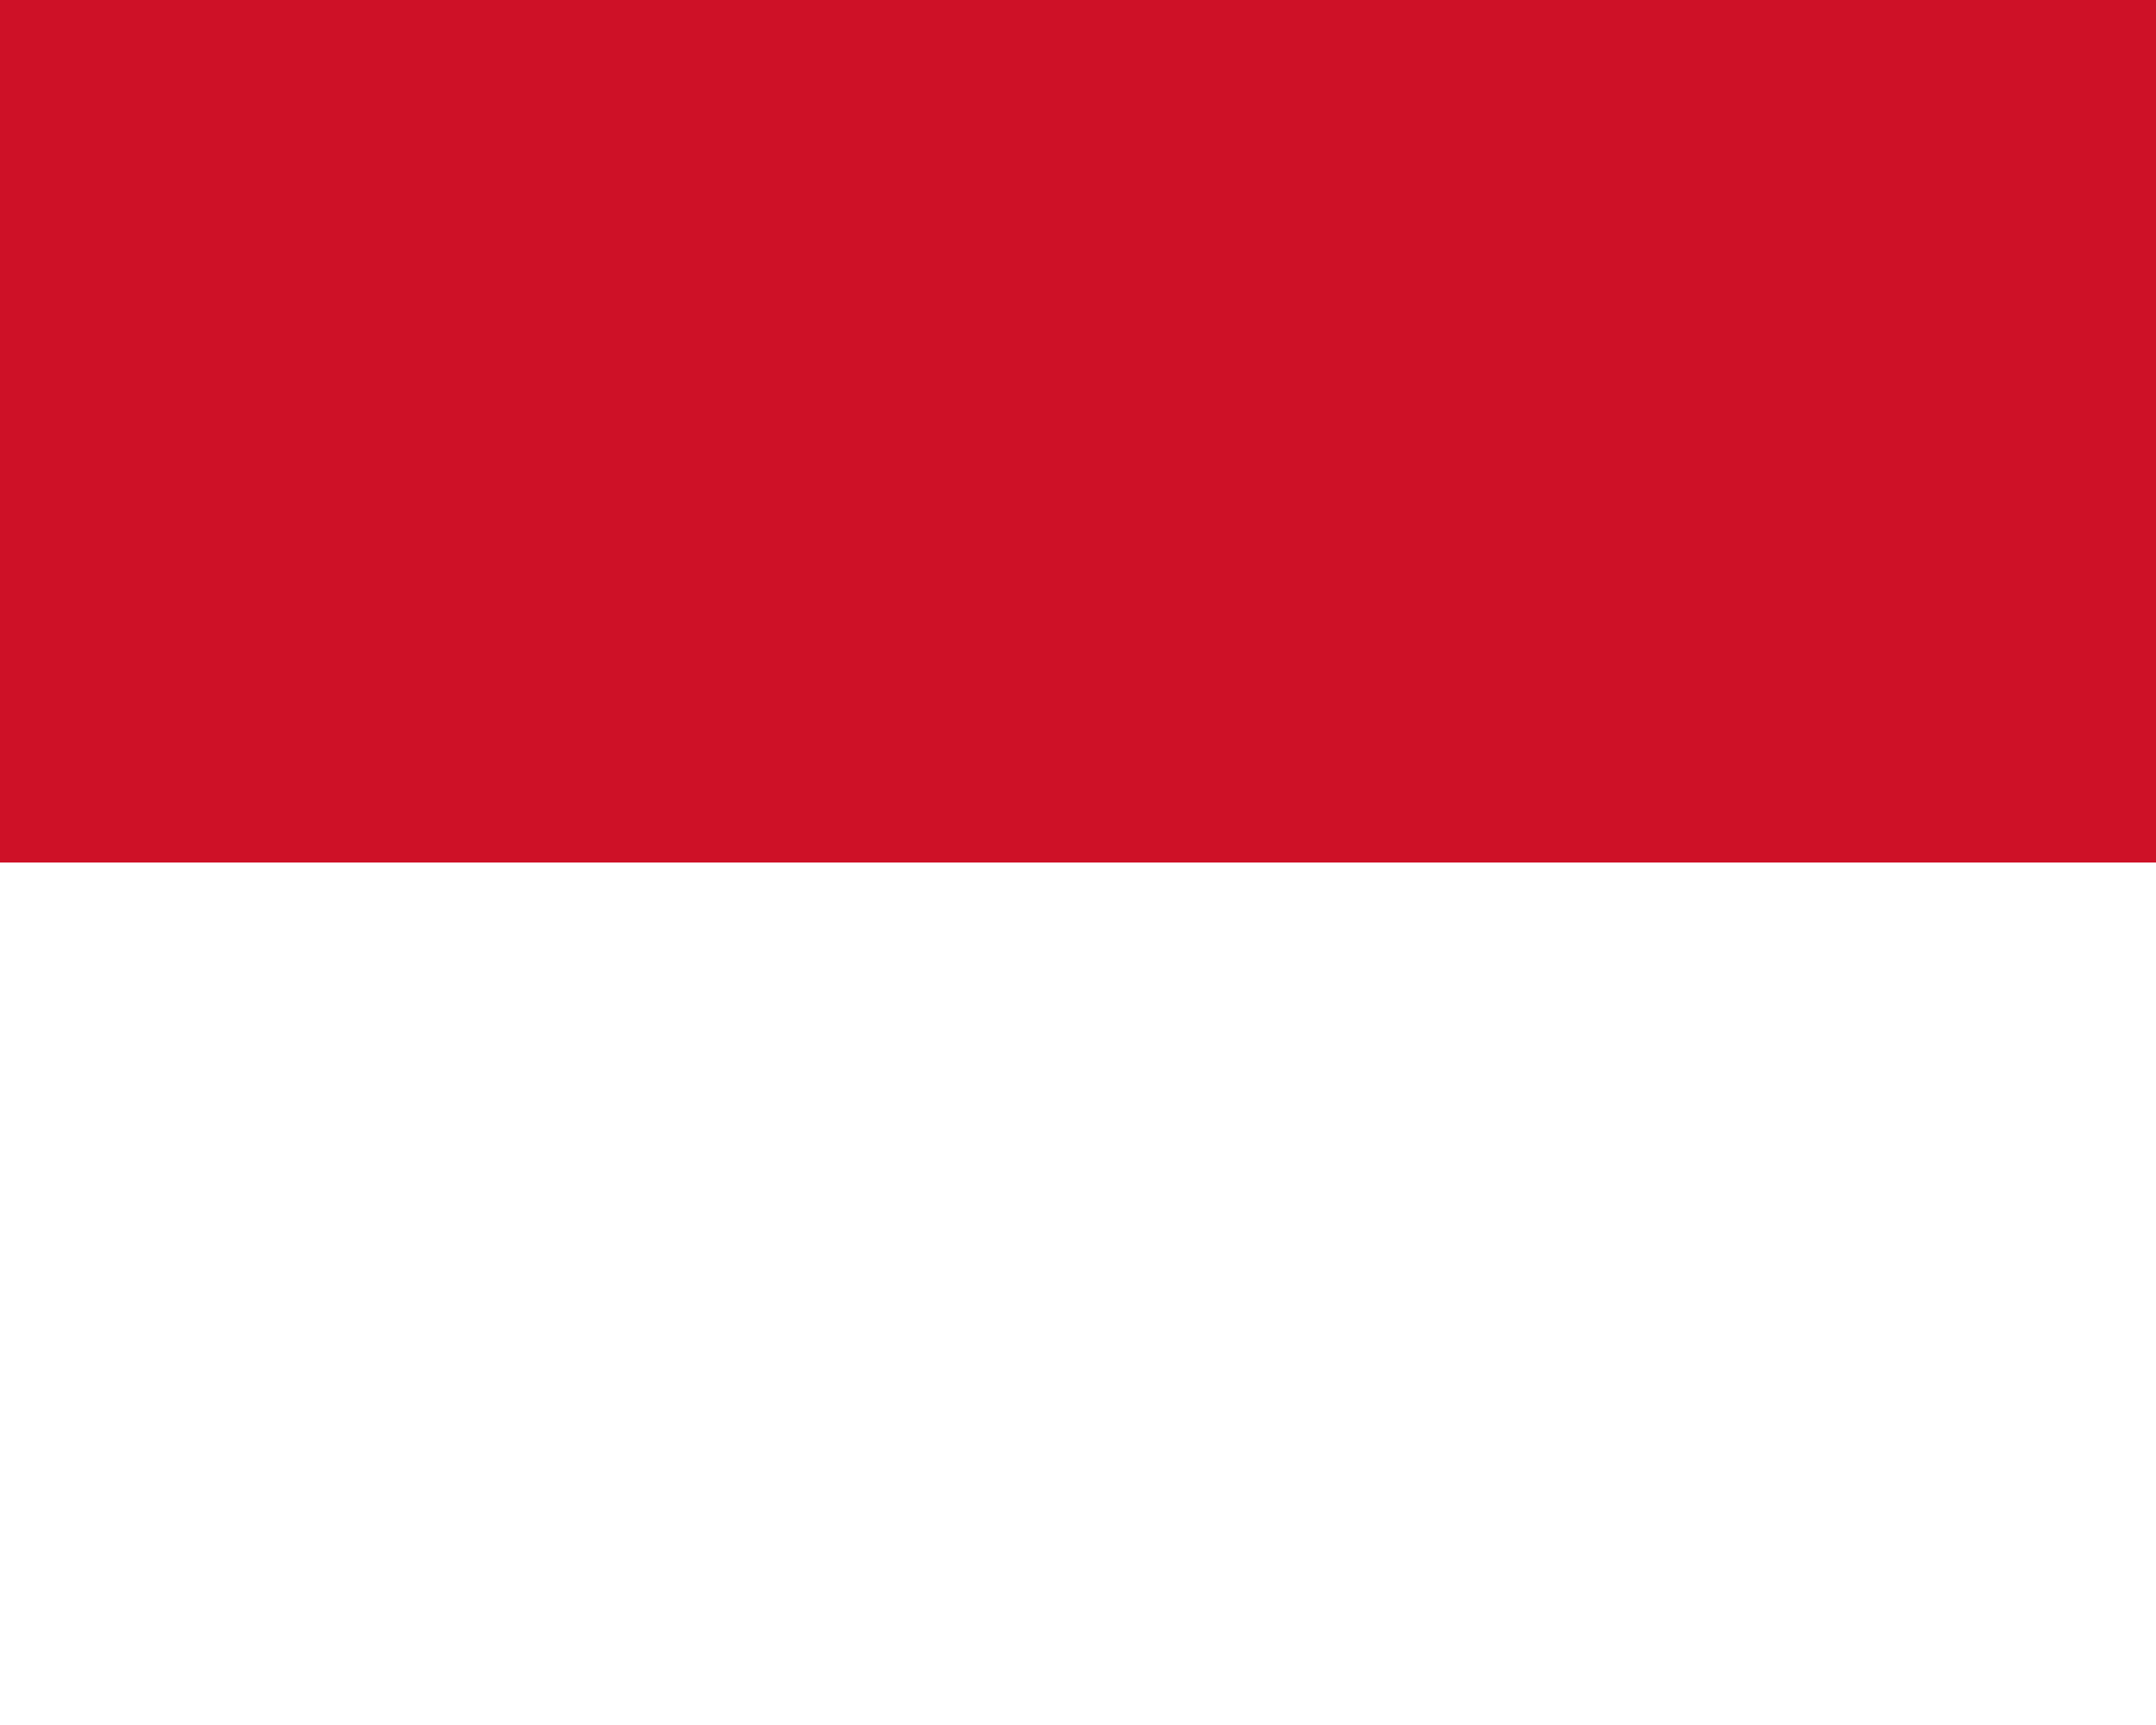 100 emoji wallpaper 48 images 1920x1440 indonesia bans gay emoji saying it could cause public unrest the independent buycottarizona